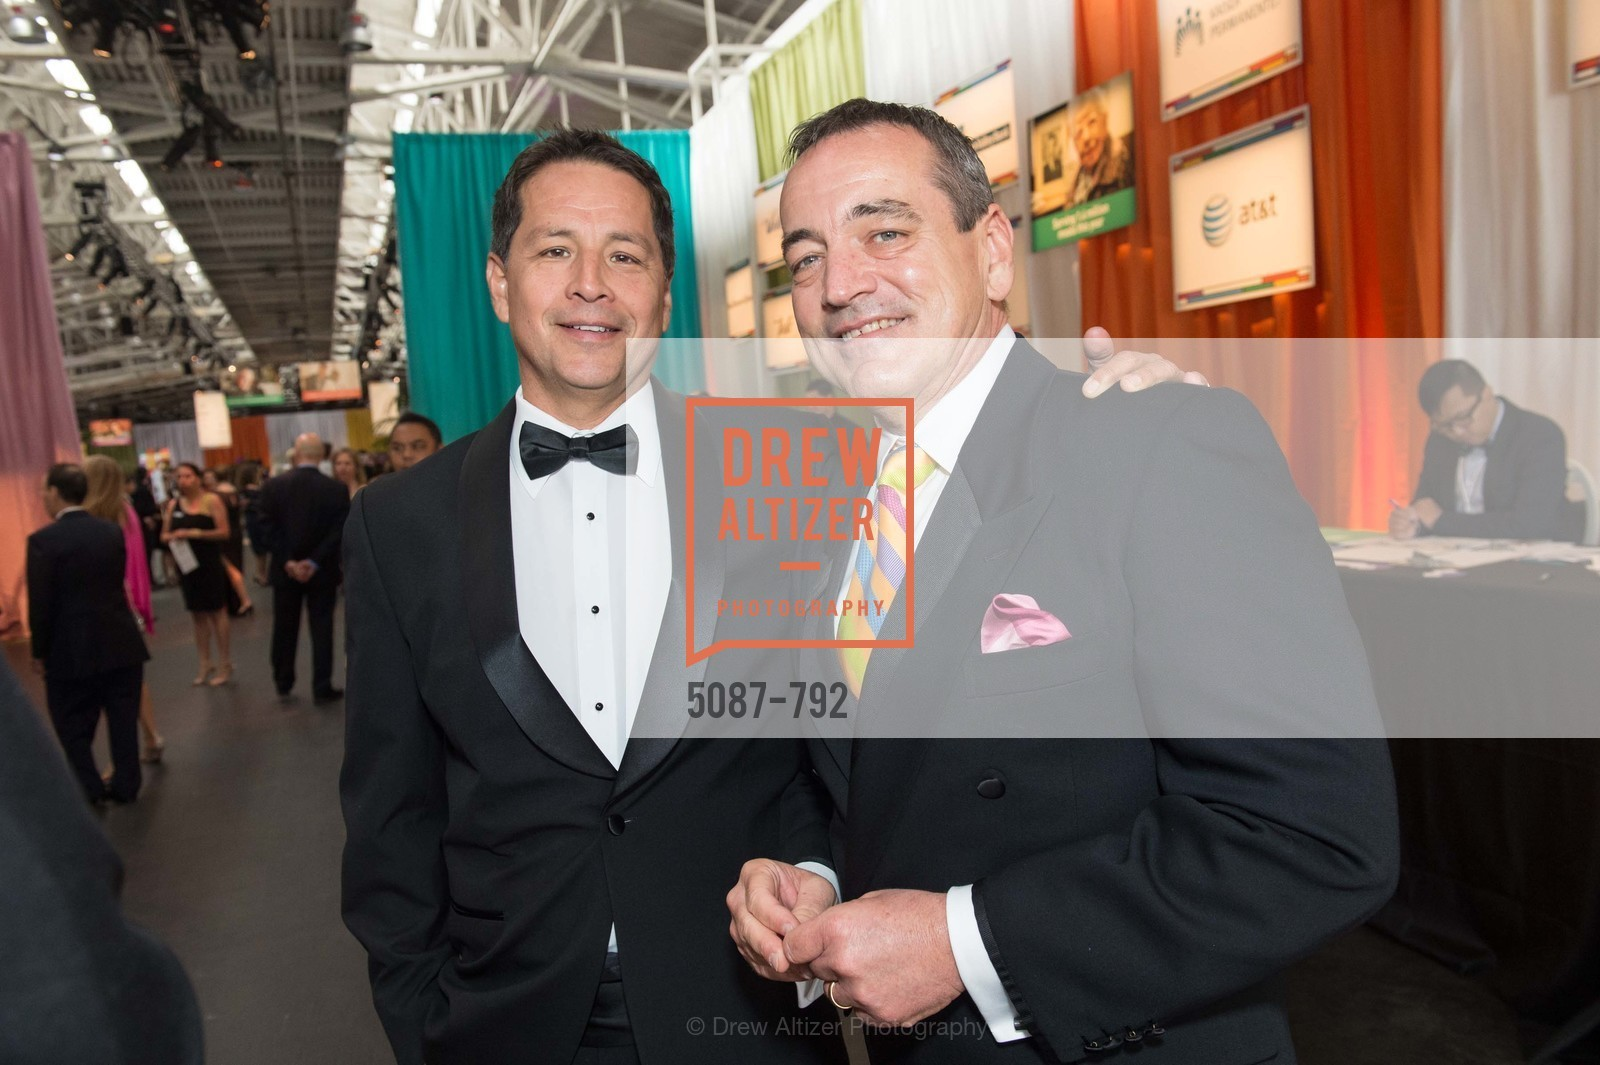 Hector Benavides, Ashley McCumber, MEALS ON WHEELS OF SAN FRANCISCO'S 28th Annual Star Chefs and Vintners Gala, US, April 19th, 2015,Drew Altizer, Drew Altizer Photography, full-service agency, private events, San Francisco photographer, photographer california